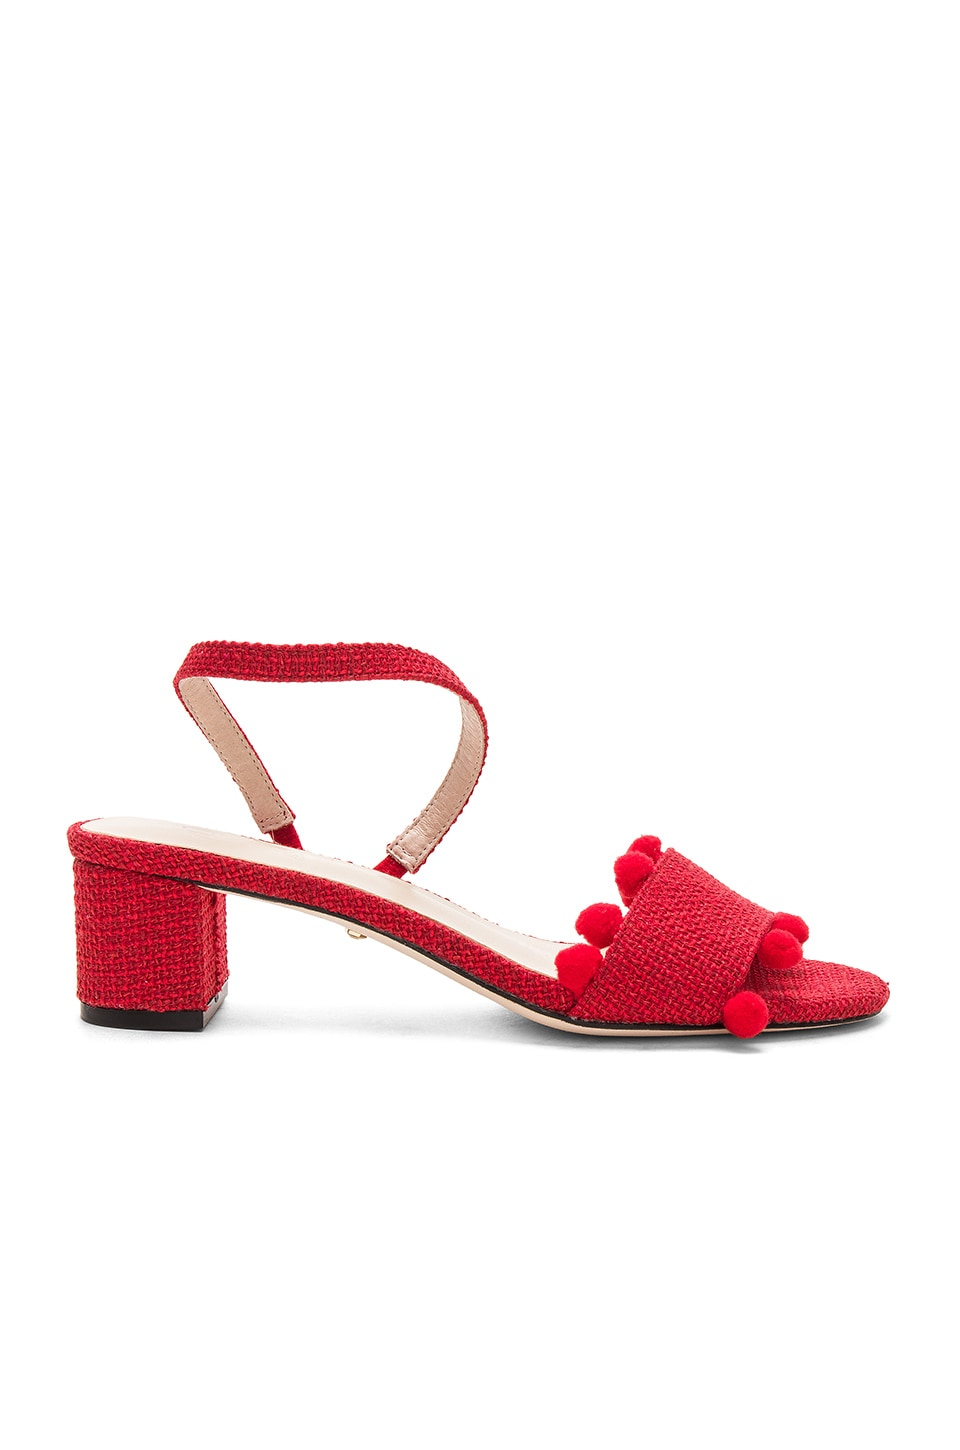 RAYE x House Of Harlow 1960 April Sandal in Red